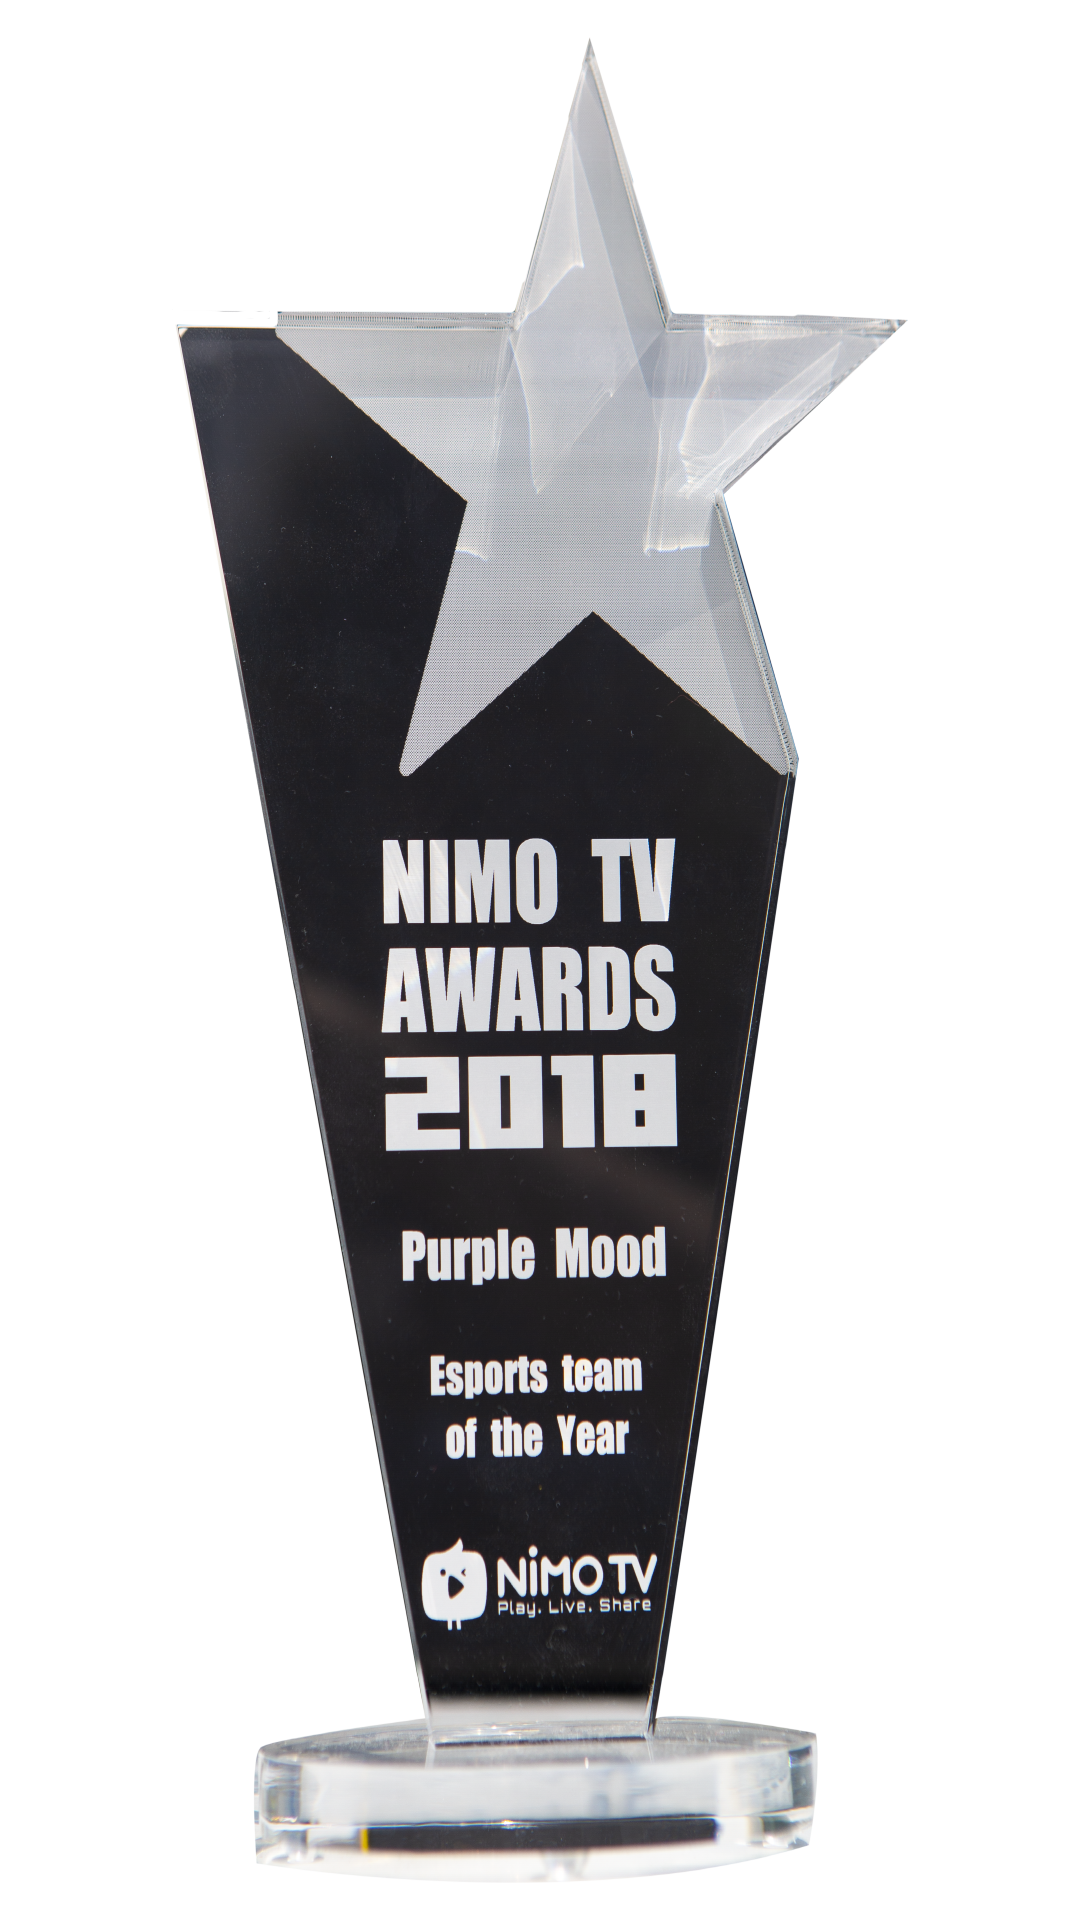 NIMO TV Award 2018 (E-SPORTS TEAM of the year)